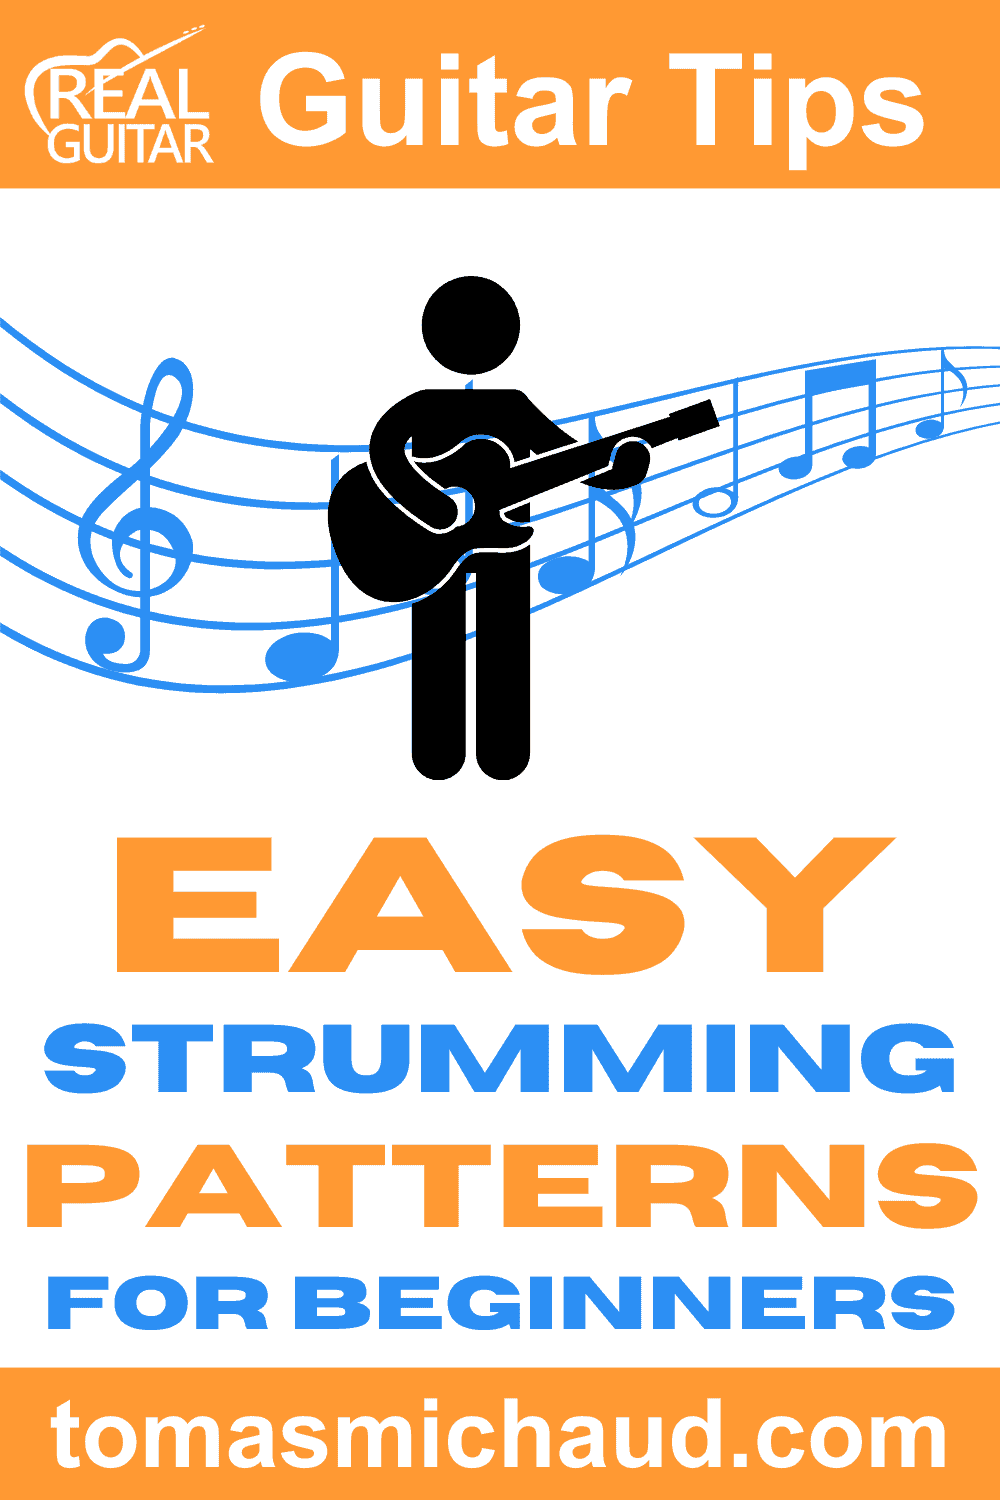 Easy Strumming Patterns for Beginners